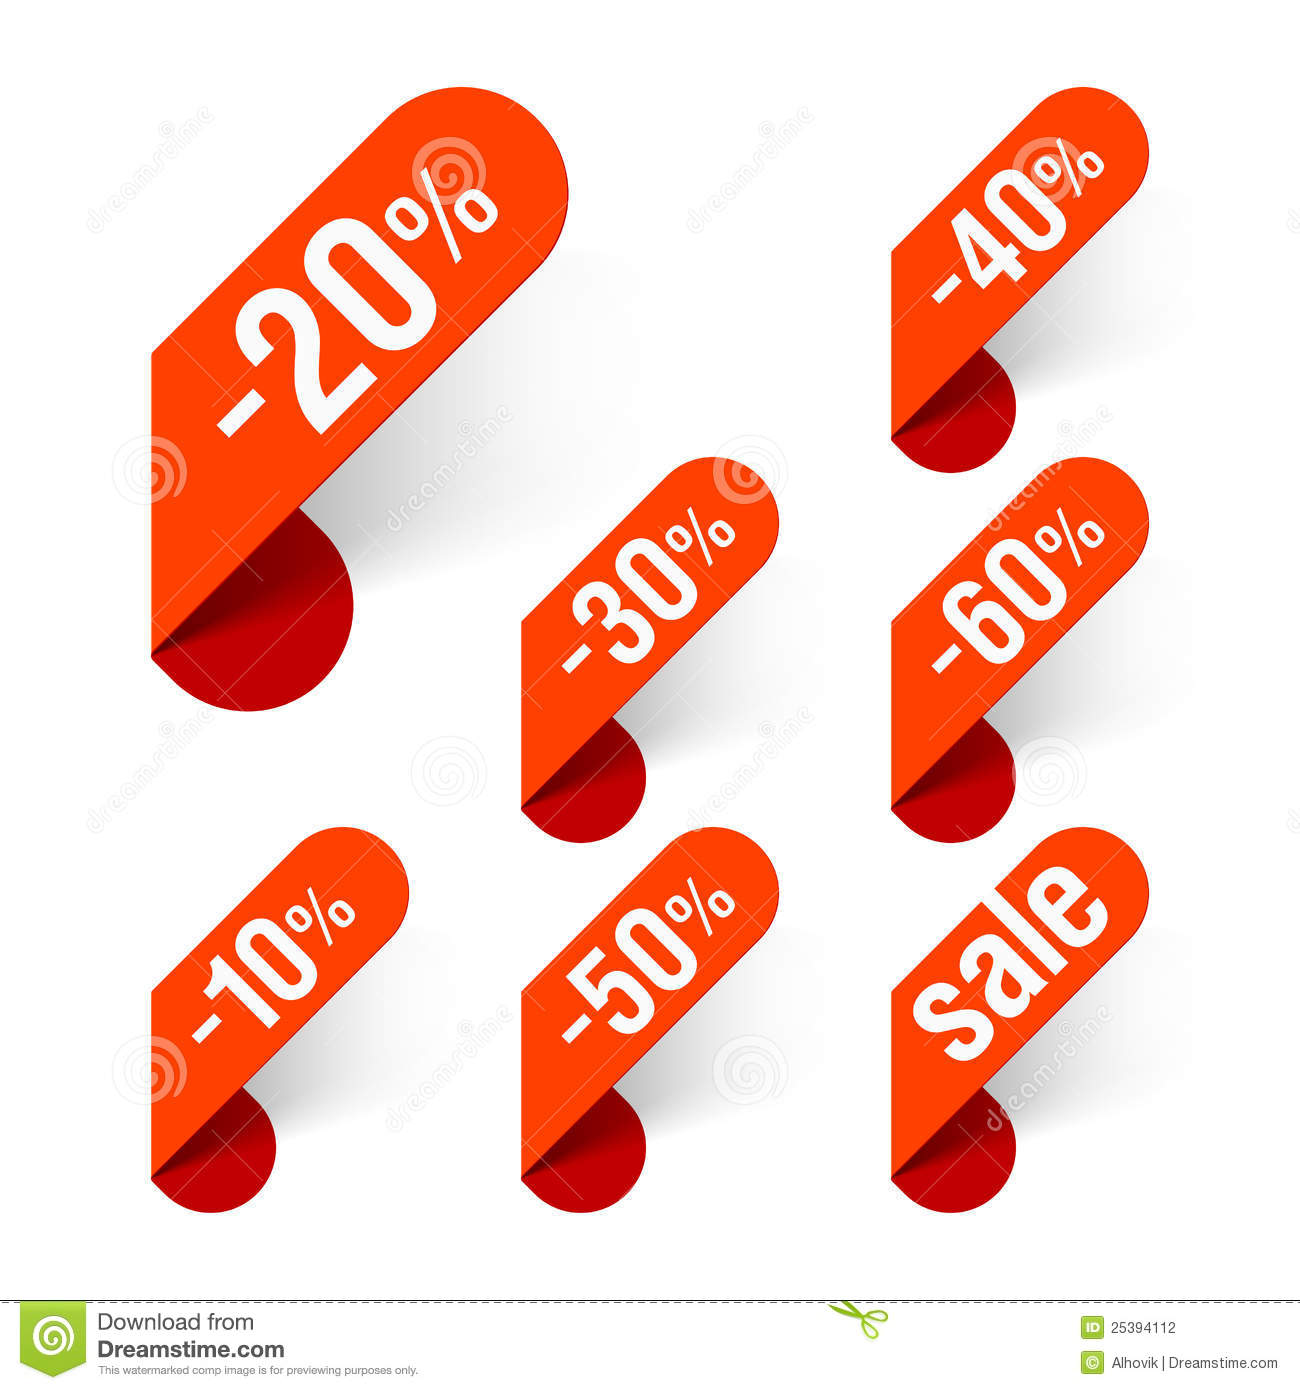 Expired and Not Verified StickersBanners Promo Codes & Offers. These offers have not been verified to work. They are either expired or are not currently valid.